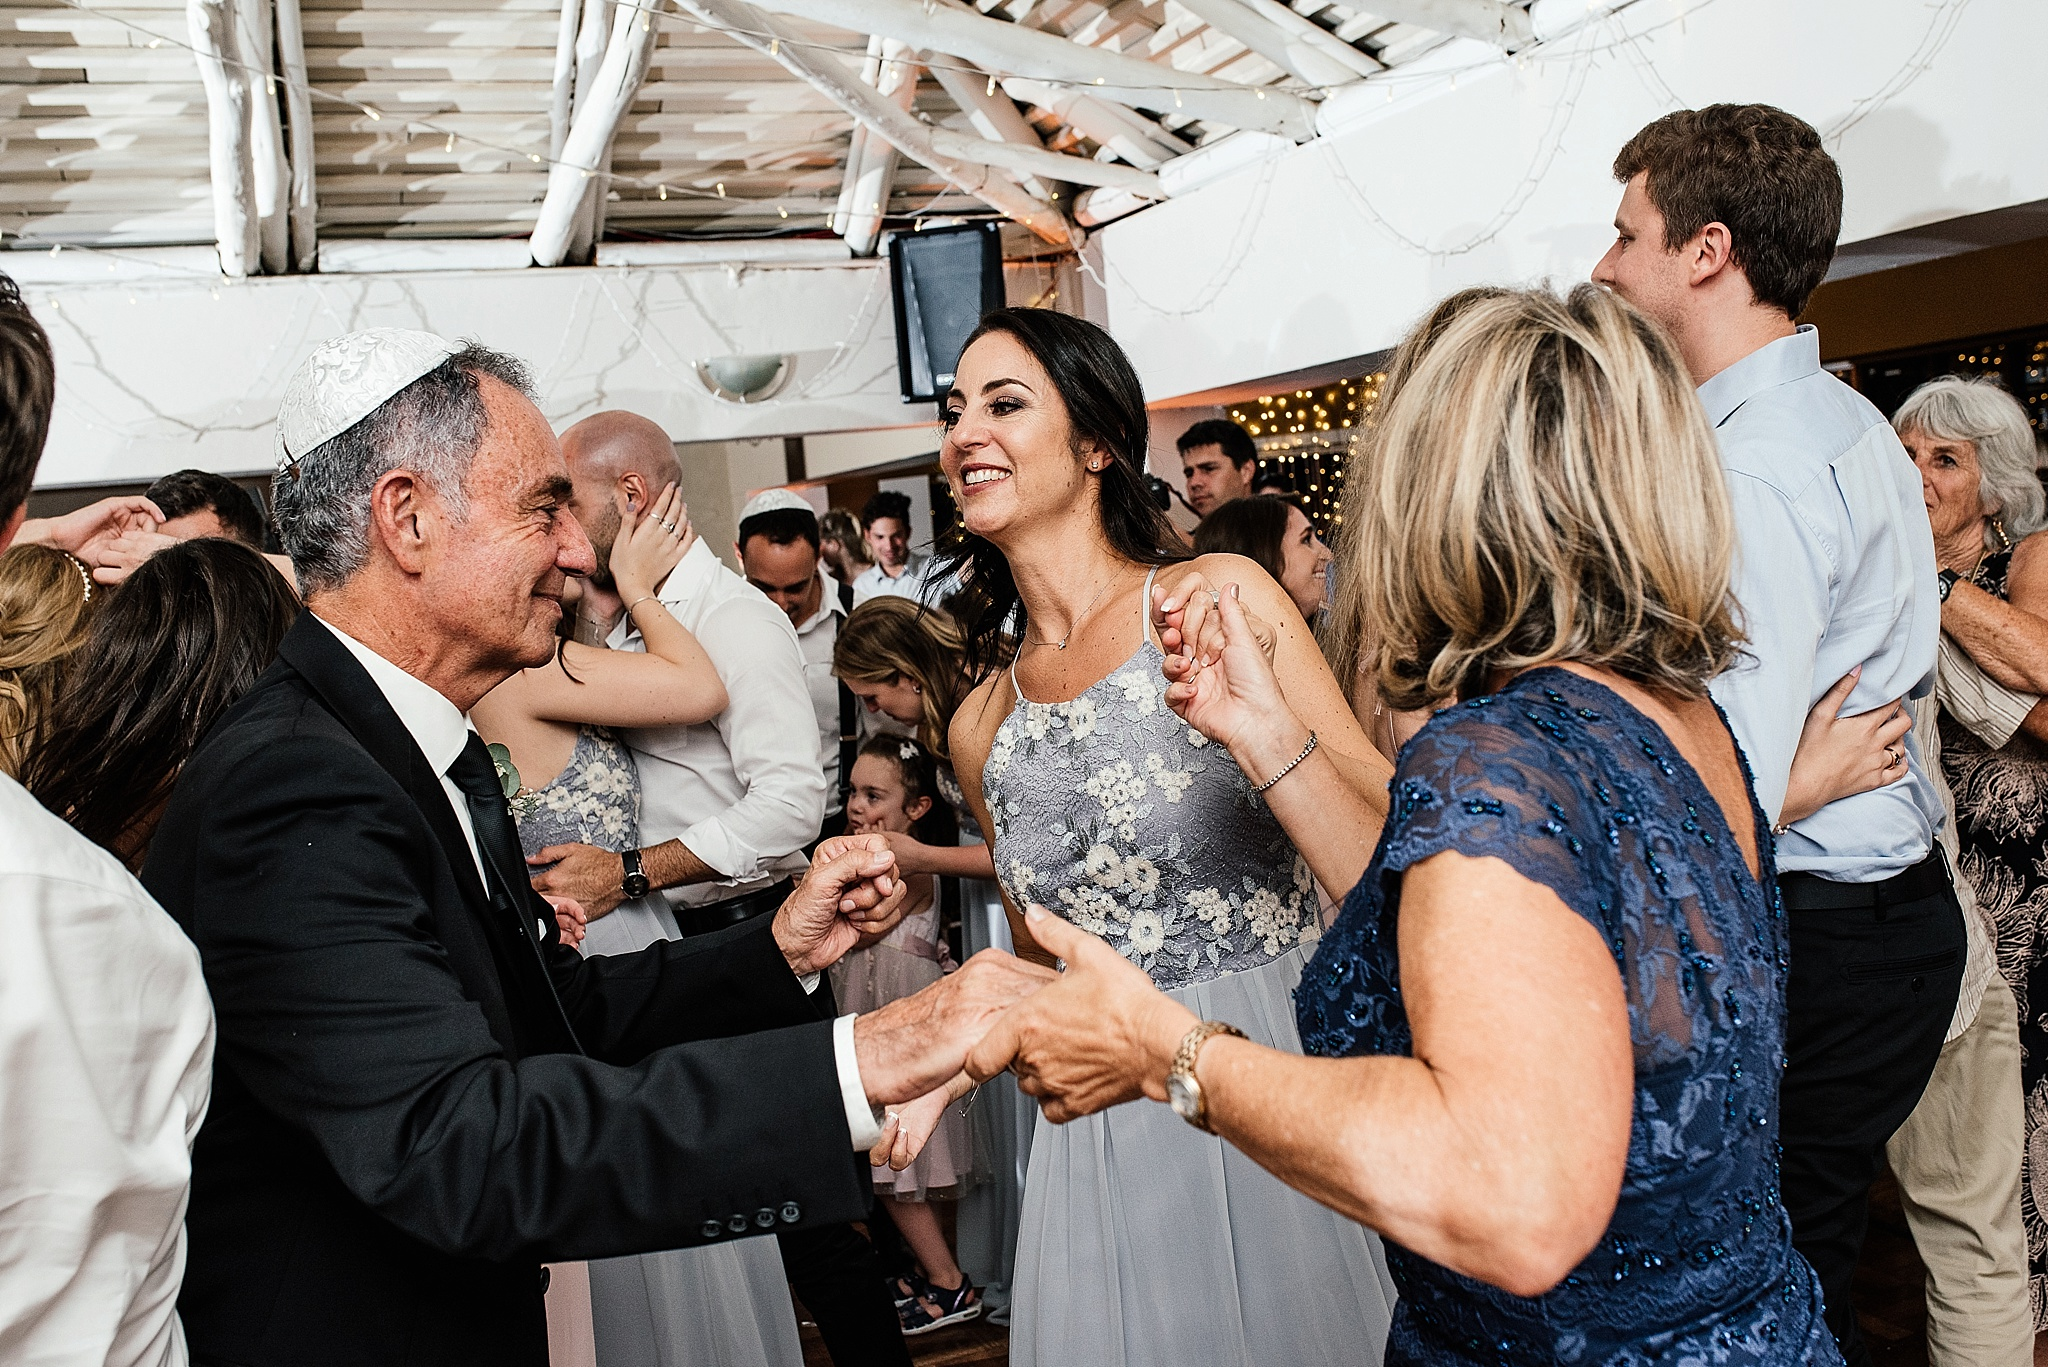 Cape Town Wedding Photographer Darren Bester - SuikerBossie - Stephen and Mikaela_0079.jpg